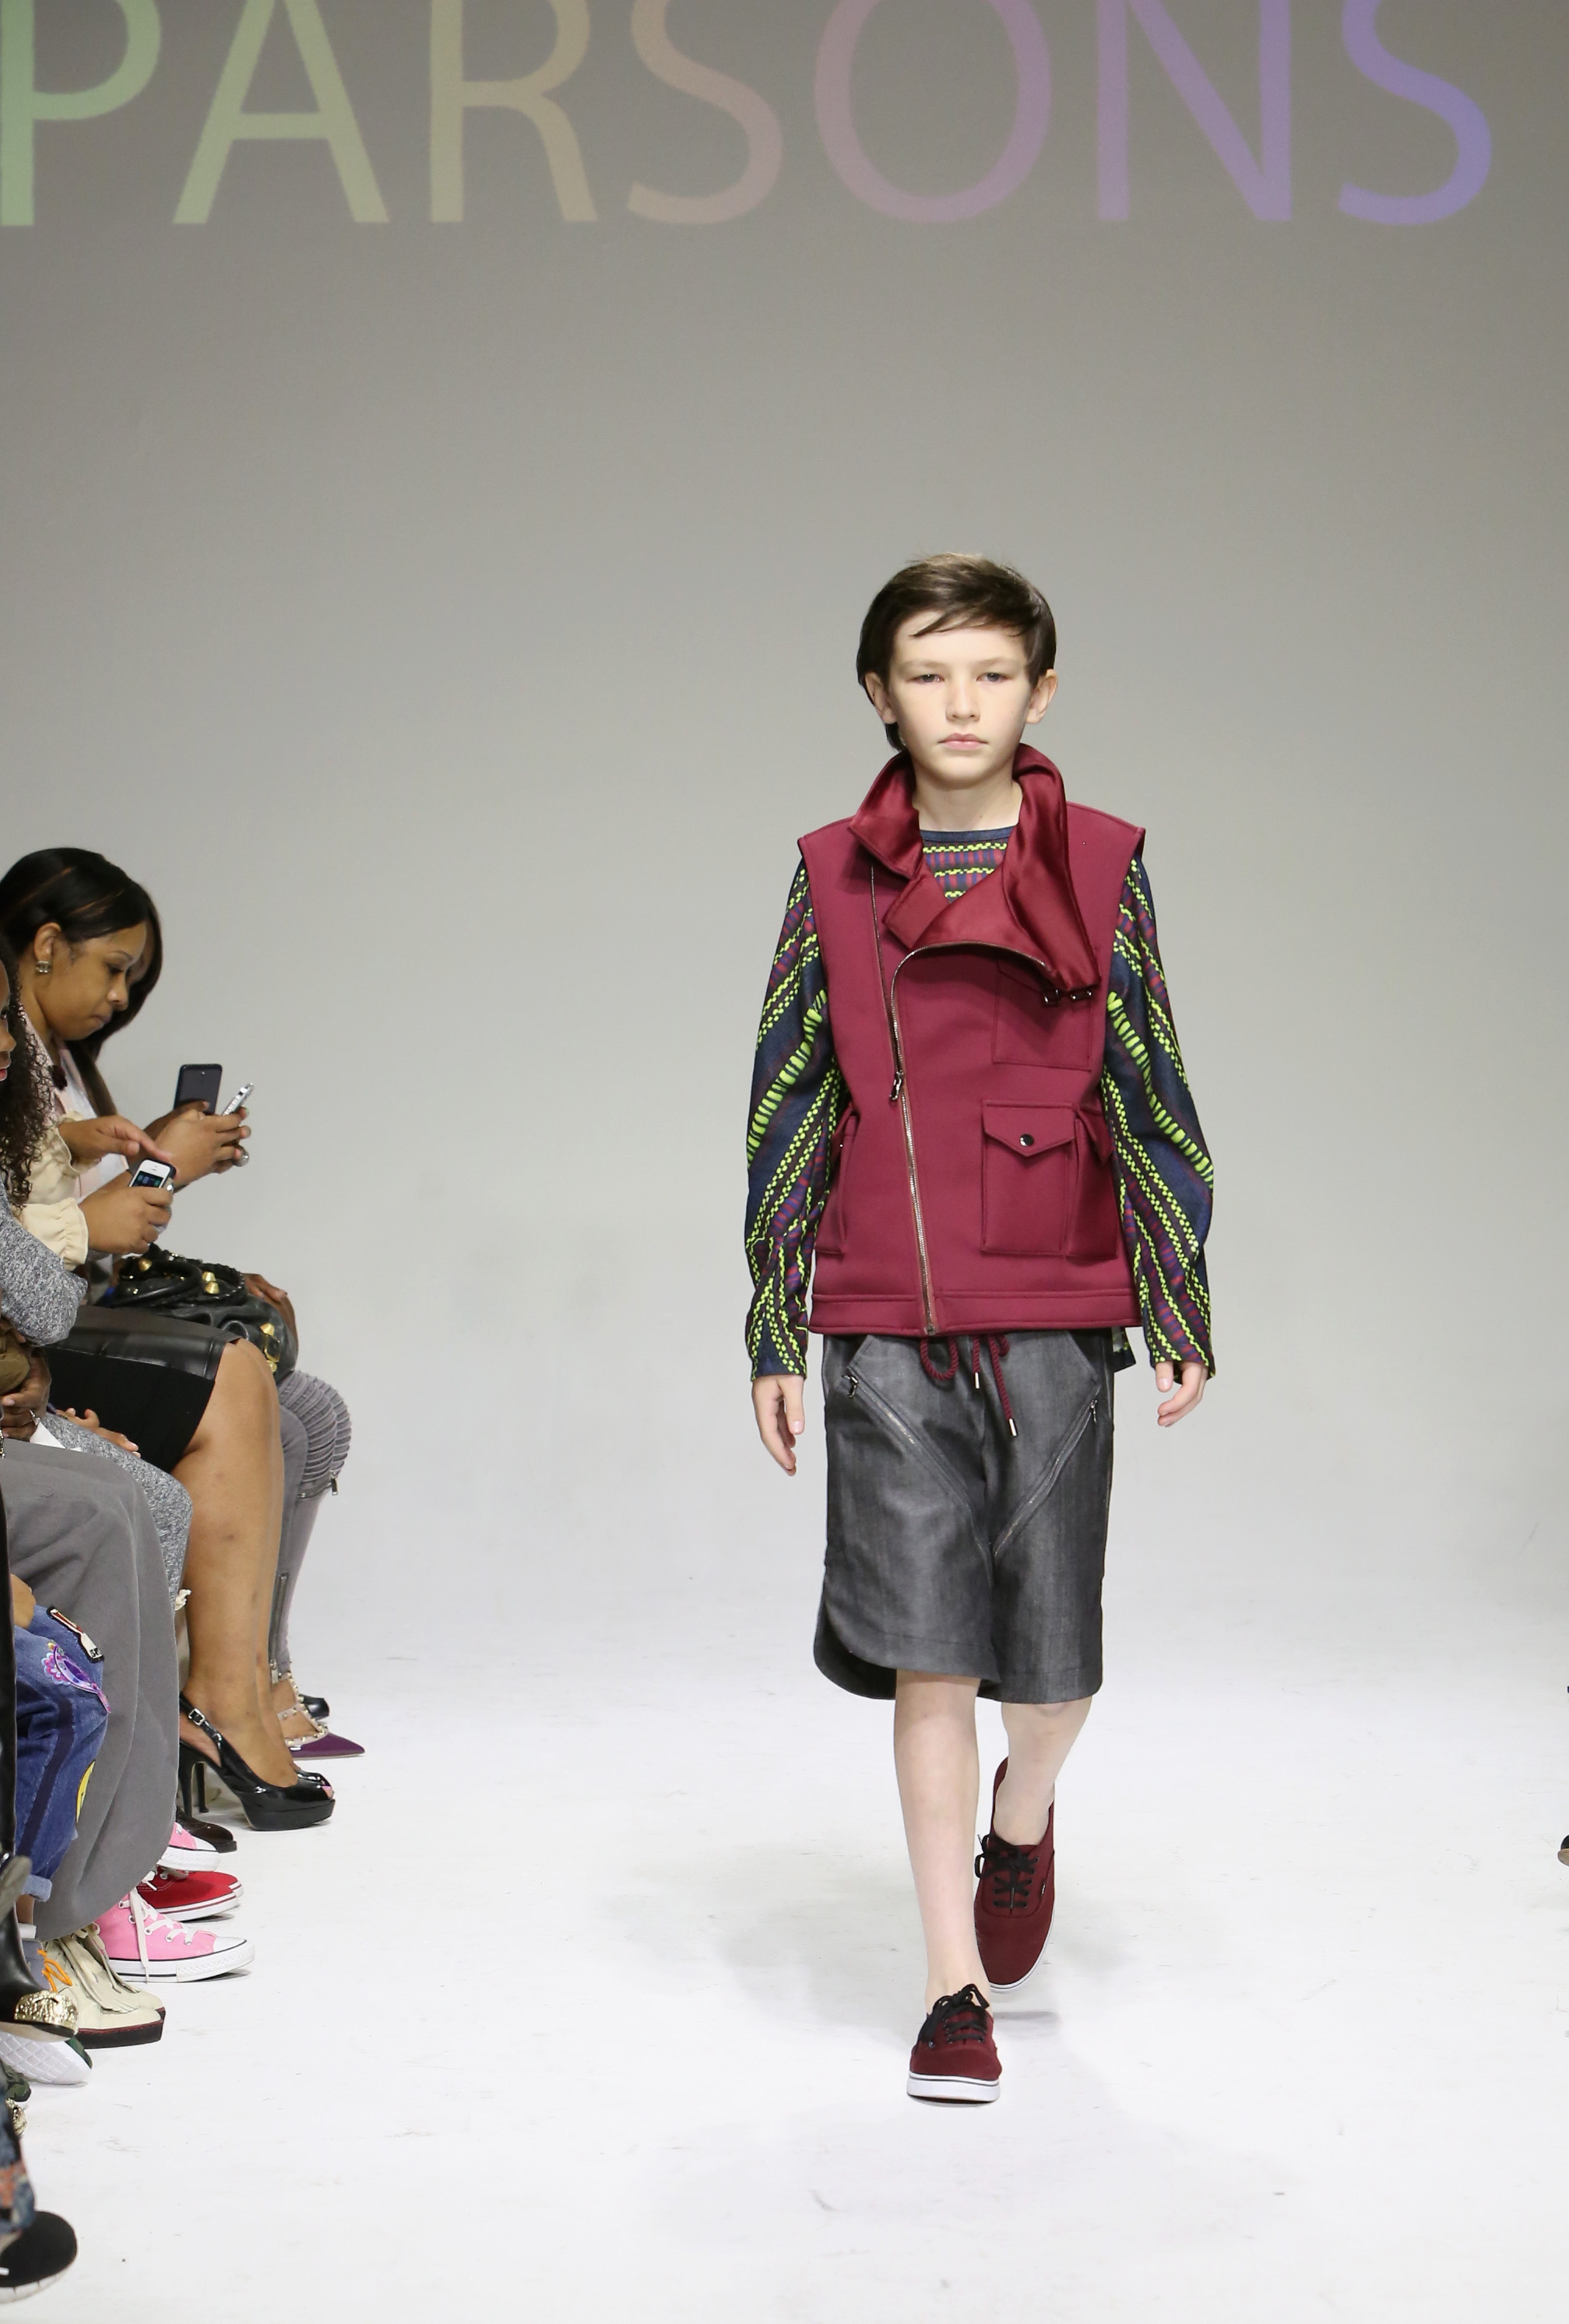 petitePARADE / Kids Fashion Week, NYC October 2014 - Day 1